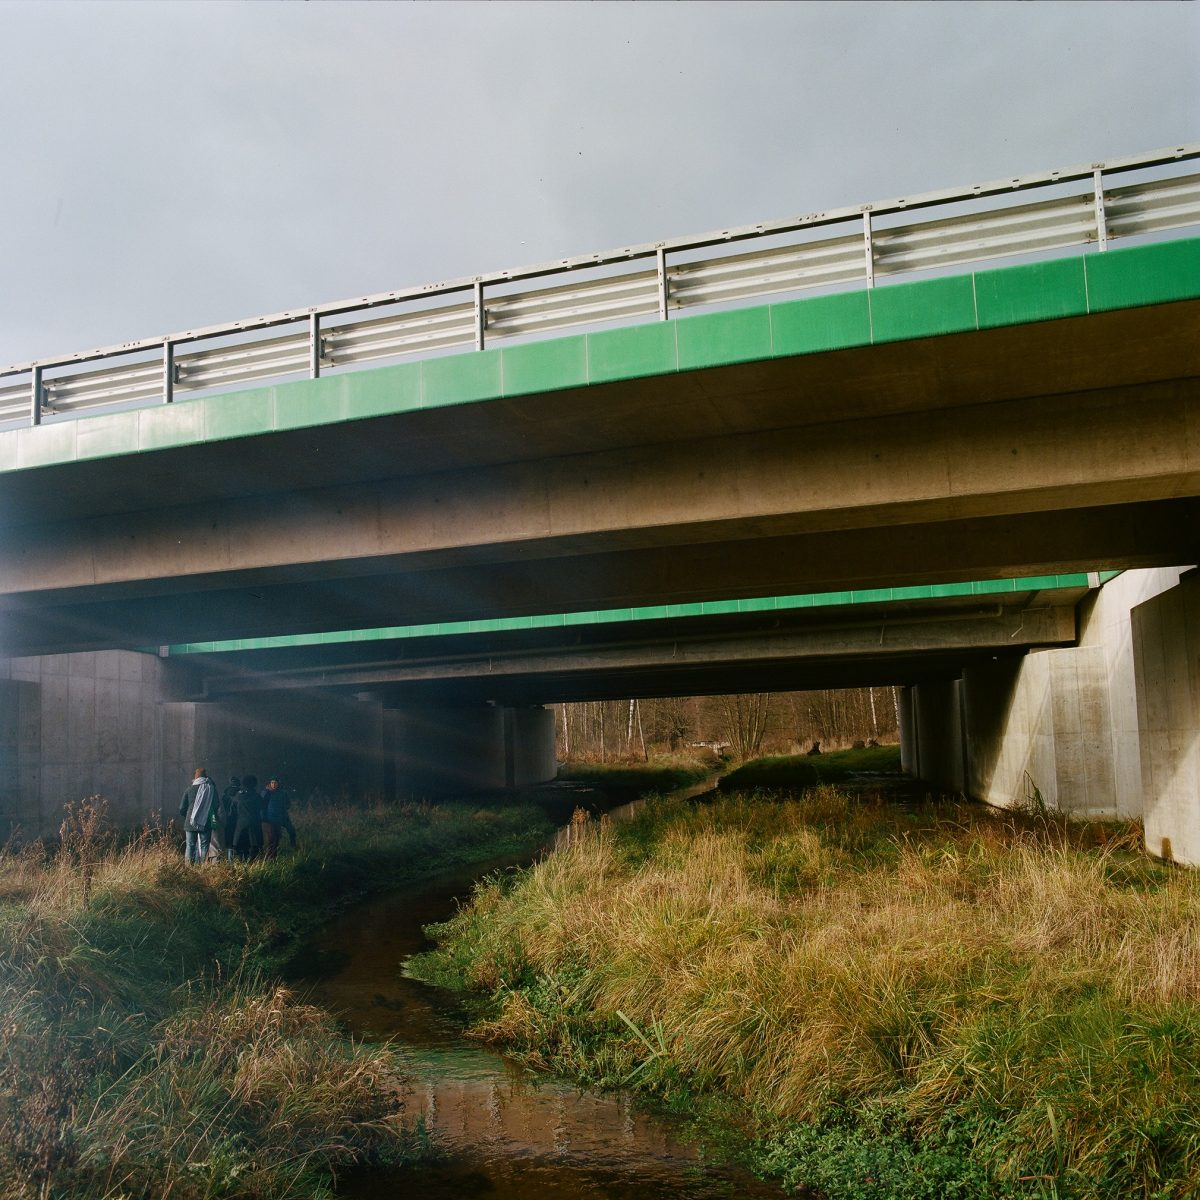 A walk and talk with Emilia Skłucka on the wildlife crossings over and below the expressway S8, near Warsaw. Photo Simone De Iacobis, 2021